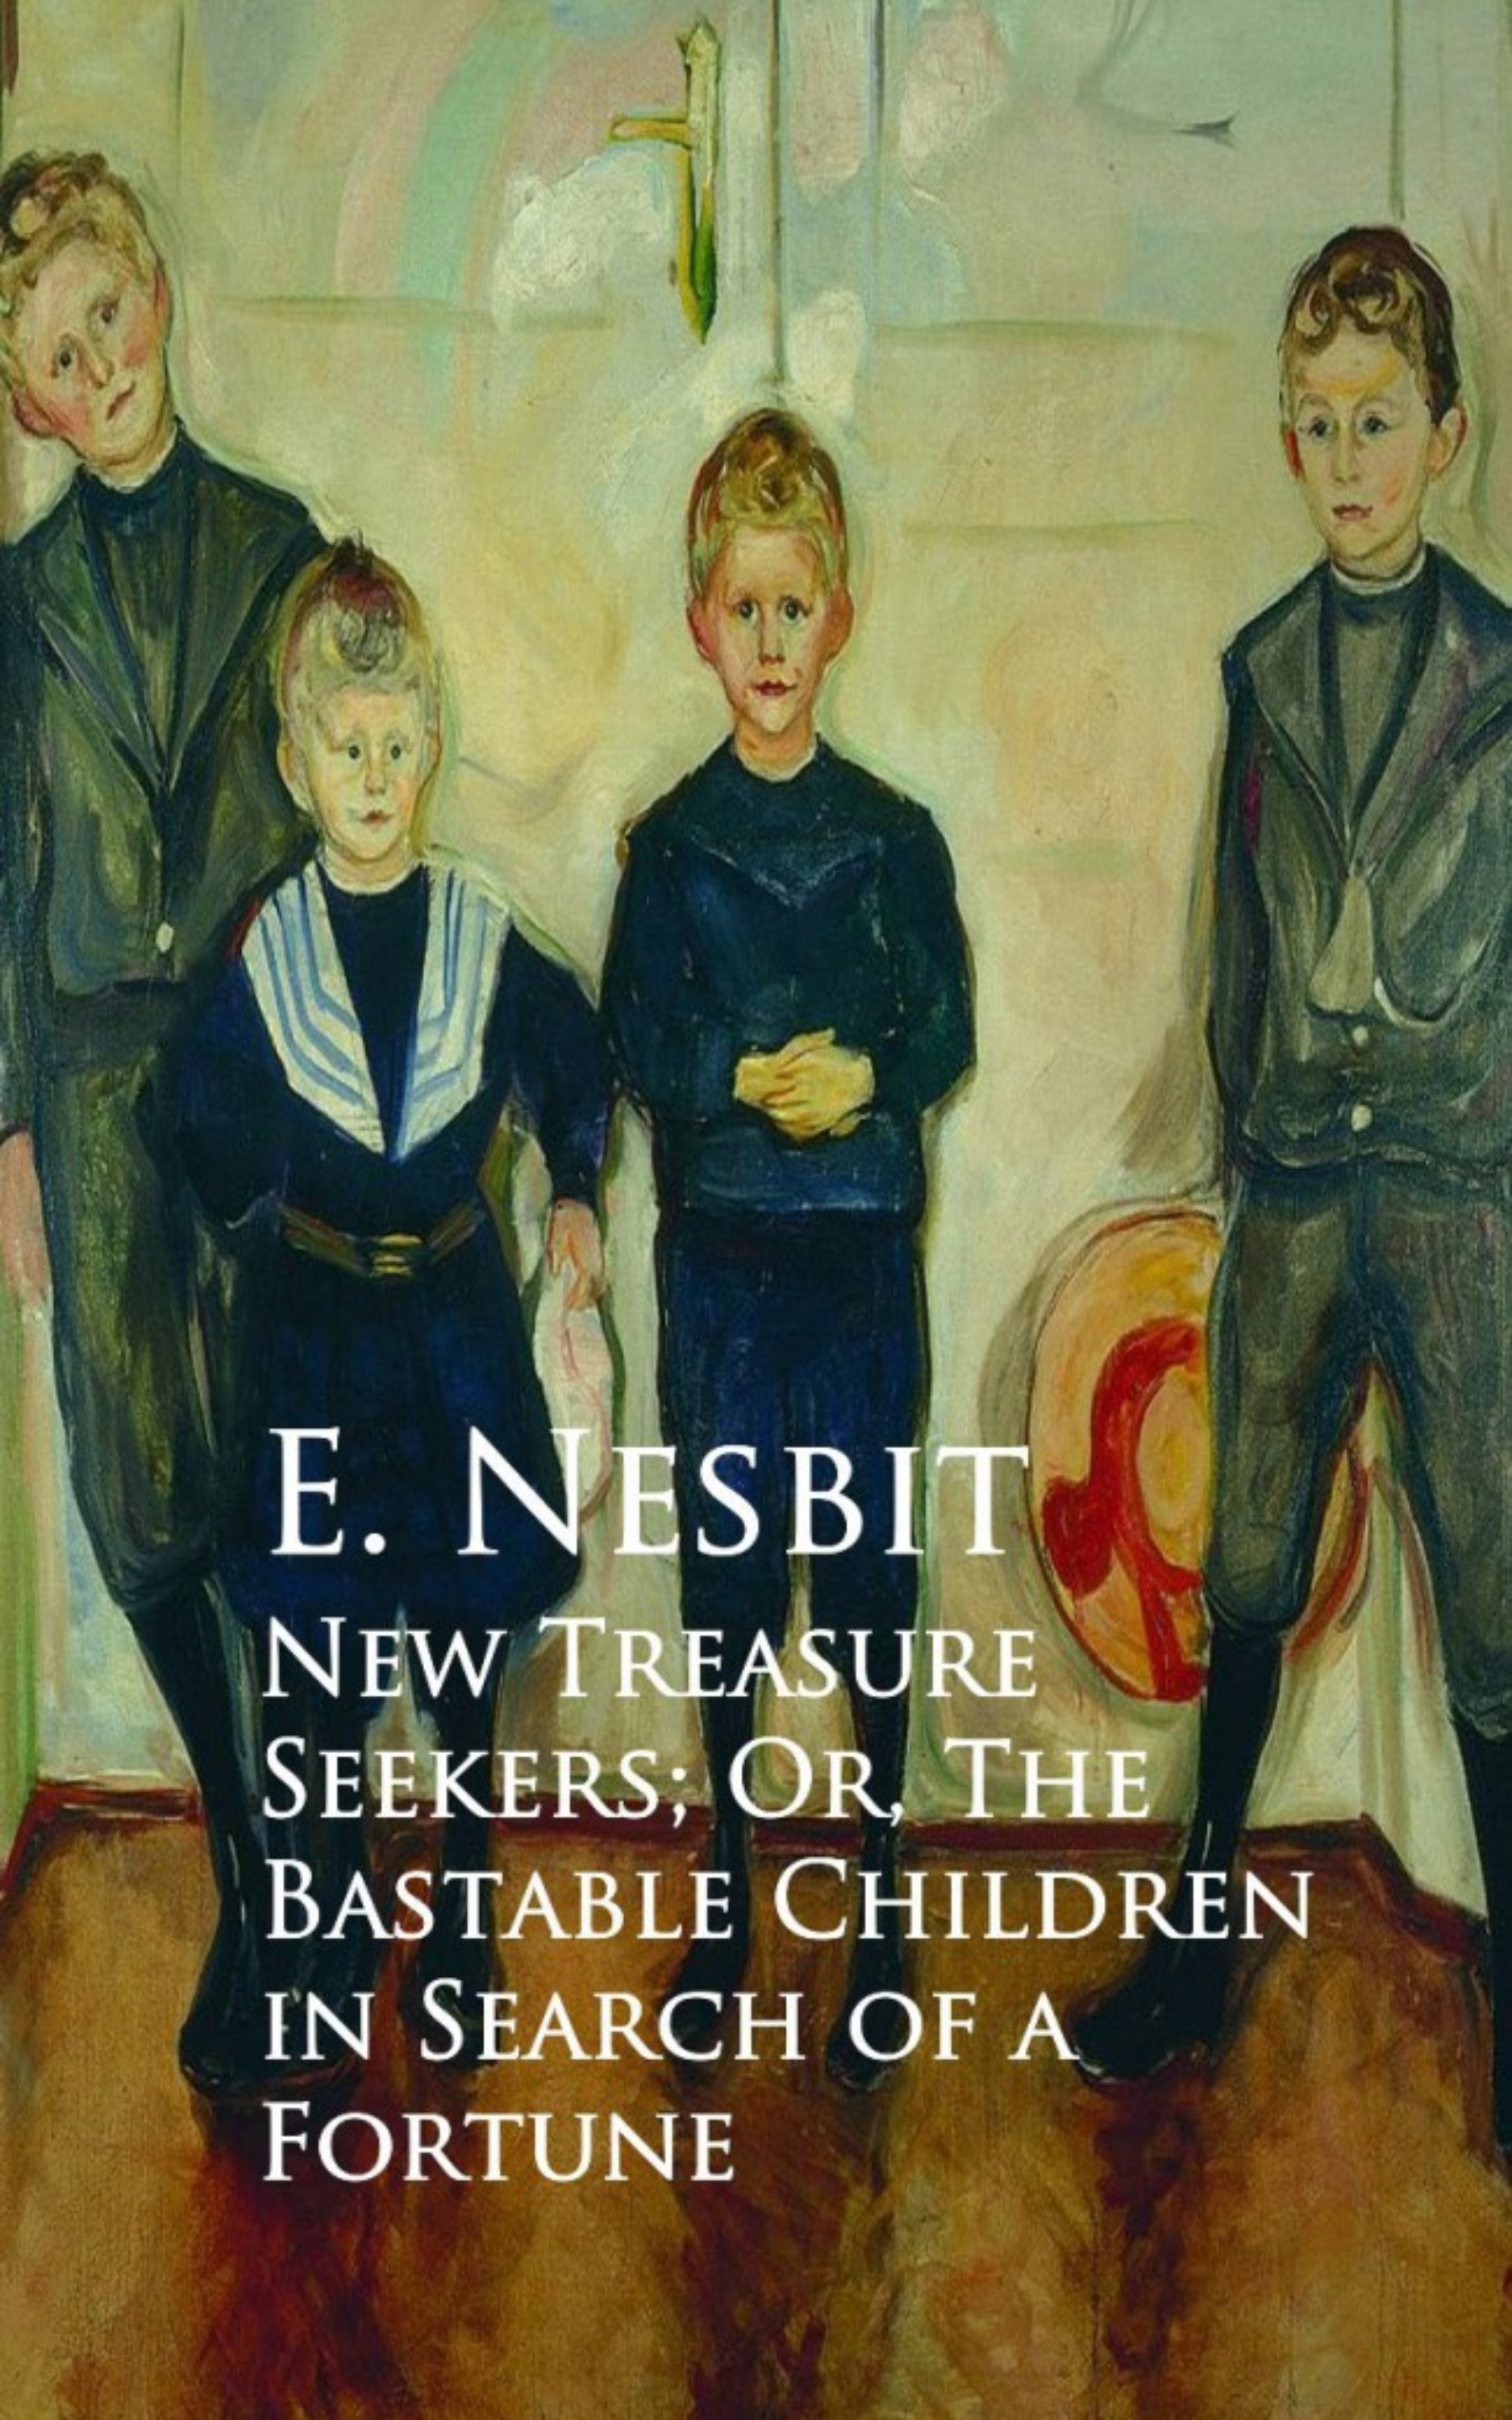 E. Nesbit New Treasure Seekers; Or, The Bastable Children in Search of a Fortune in search of the double sunderland afc 1912 13